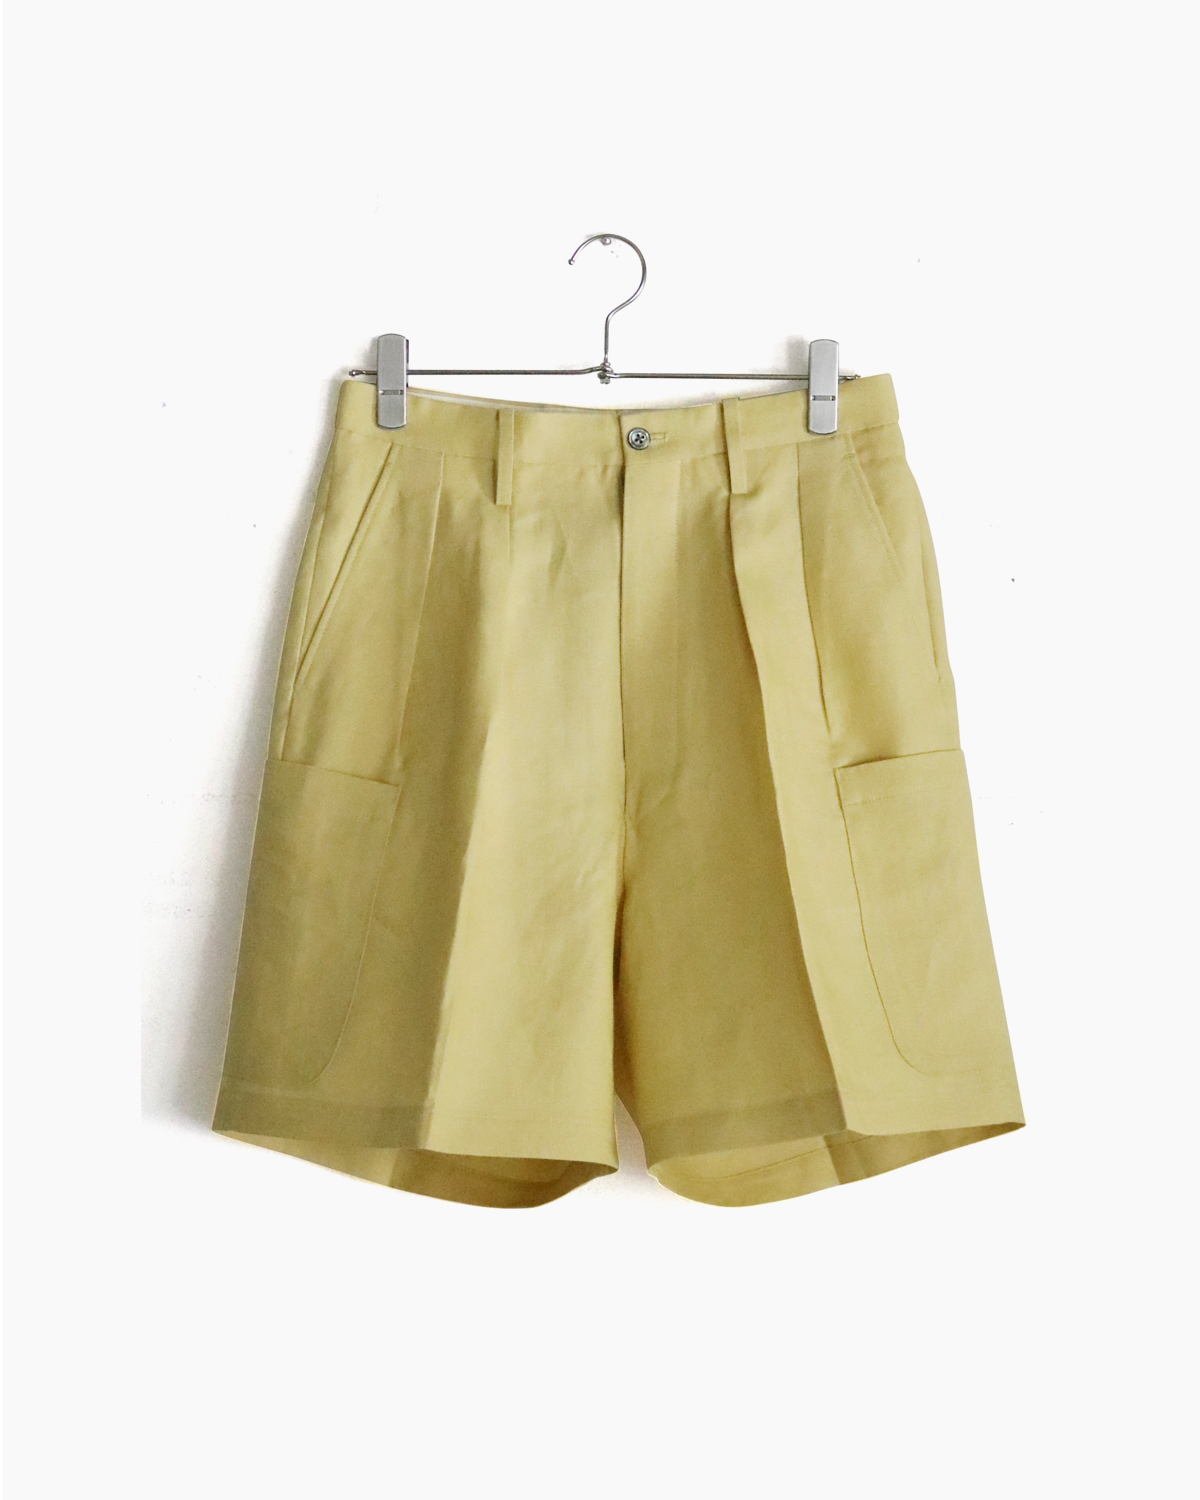 SPENCE BRYSON LINEN|CARGO SHORTS – Yellow|NEAT